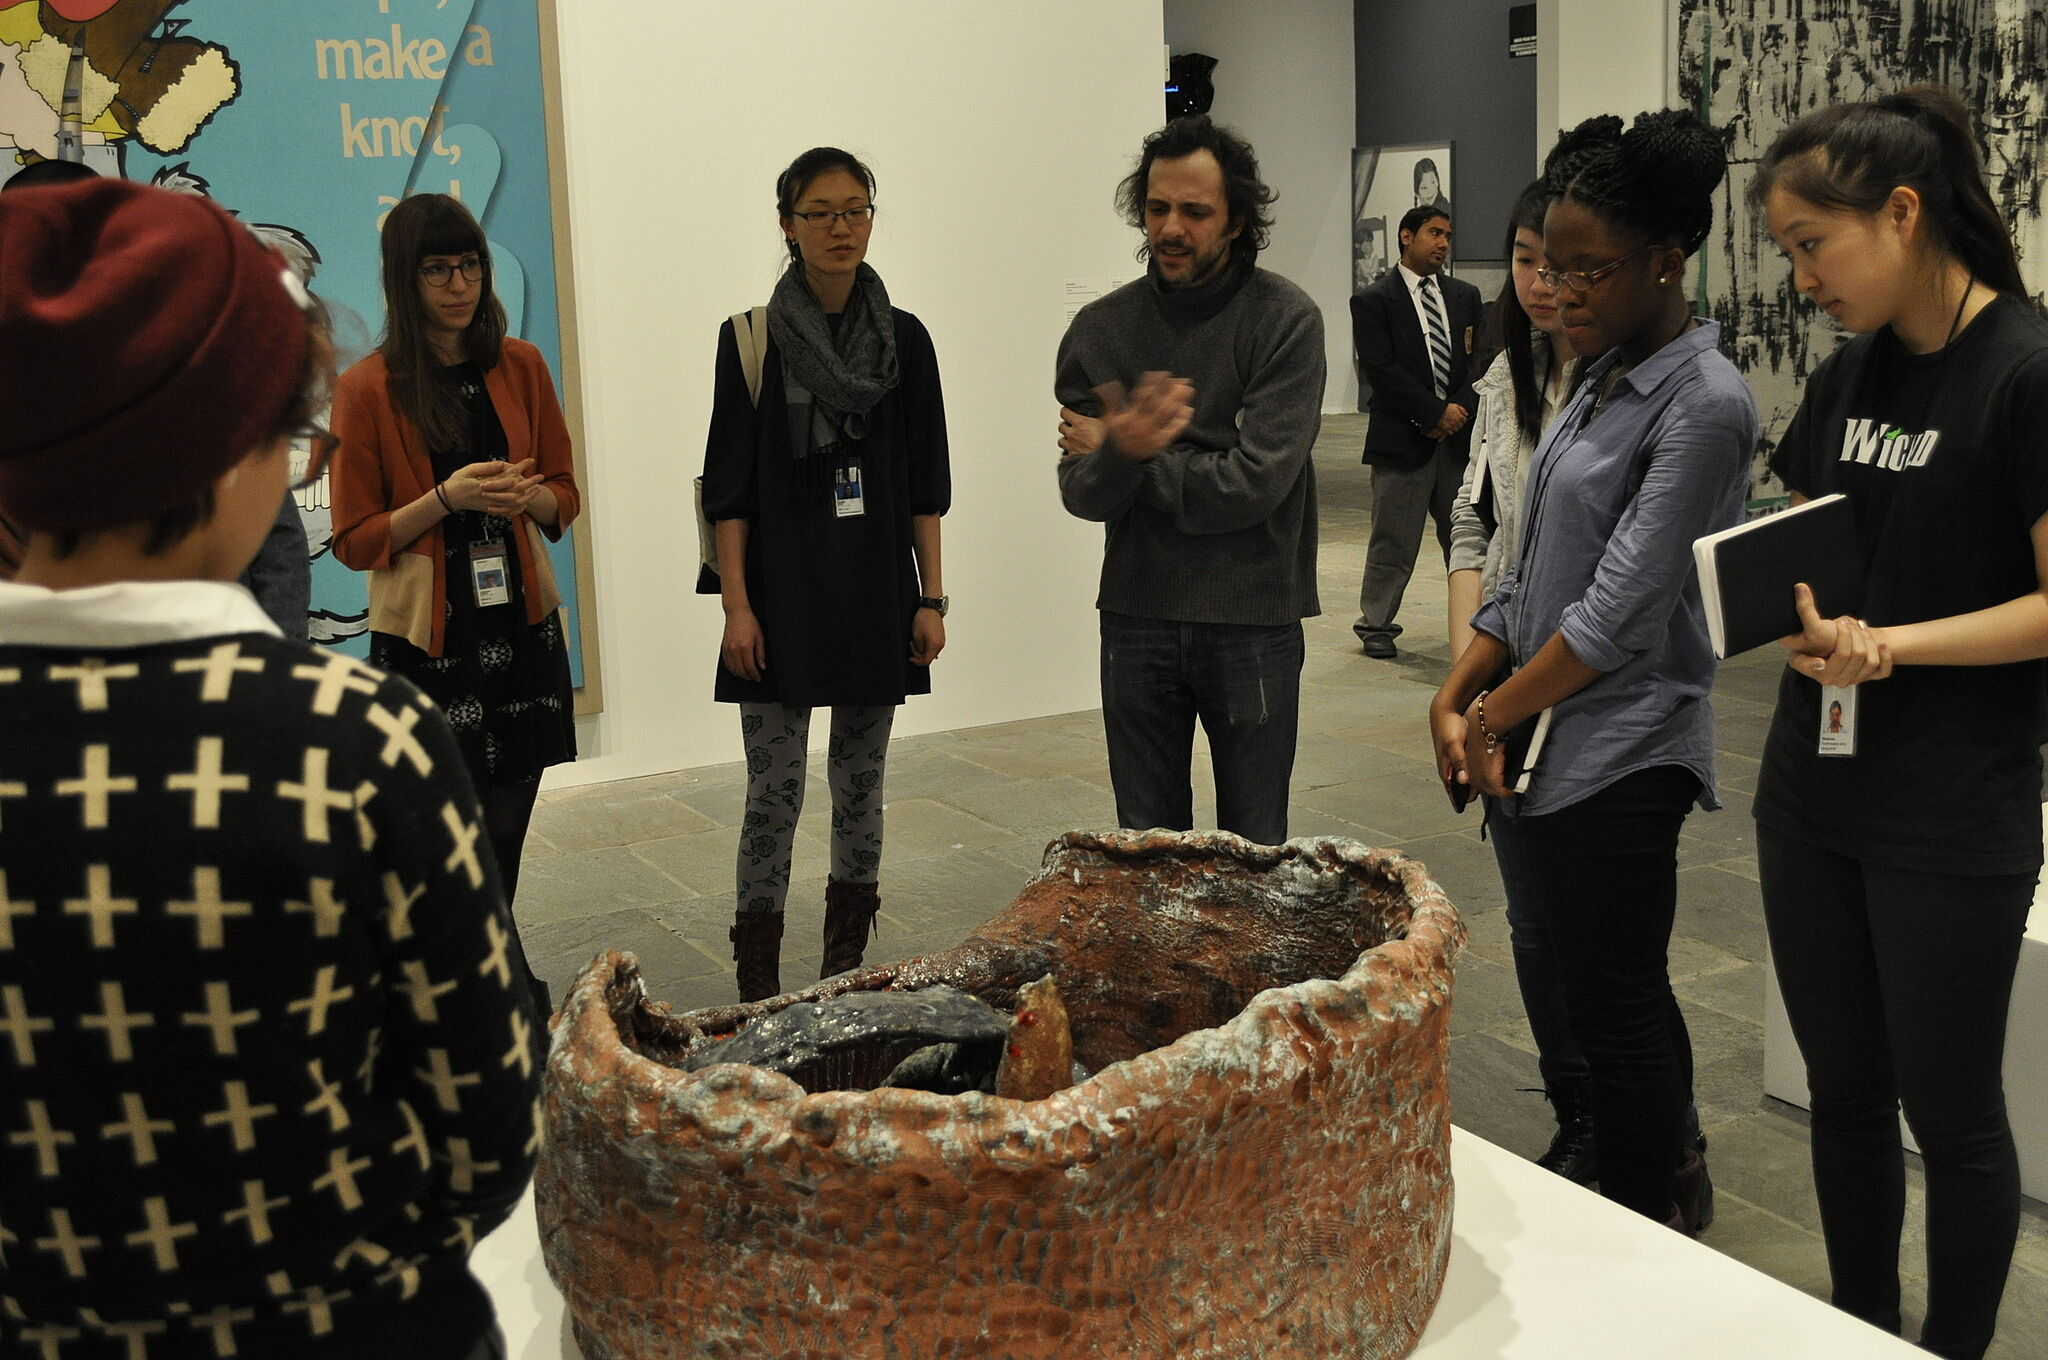 The artist takes youth leaders through a tour of the Biennial exhbiit.